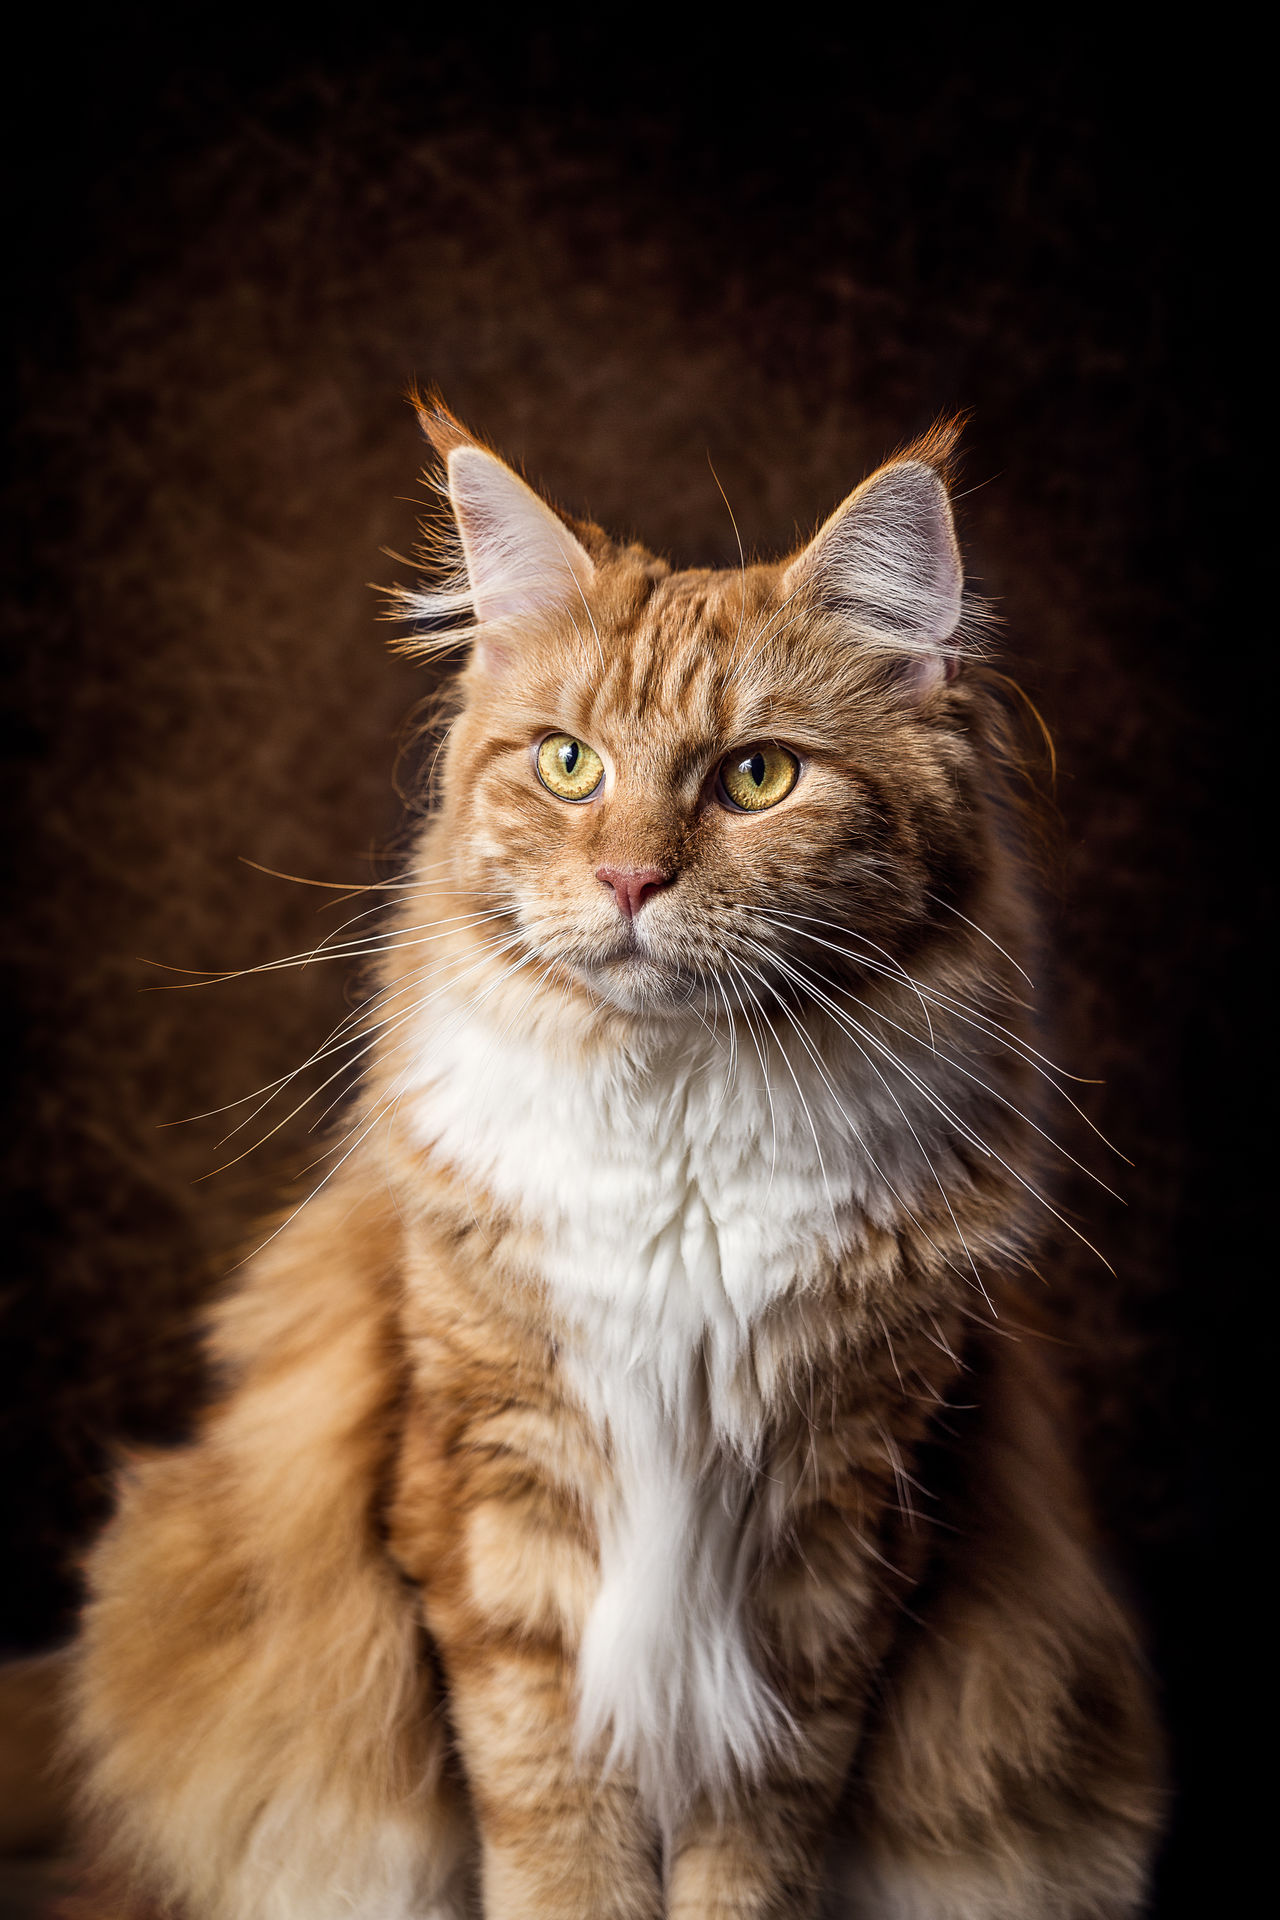 Female Maine Coon Cat Animal Themes Black Background Close-up Day Domestic Animals Domestic Cat Feline Indoors  Looking At Camera Mammal No People One Animal Pets Portrait Whisker